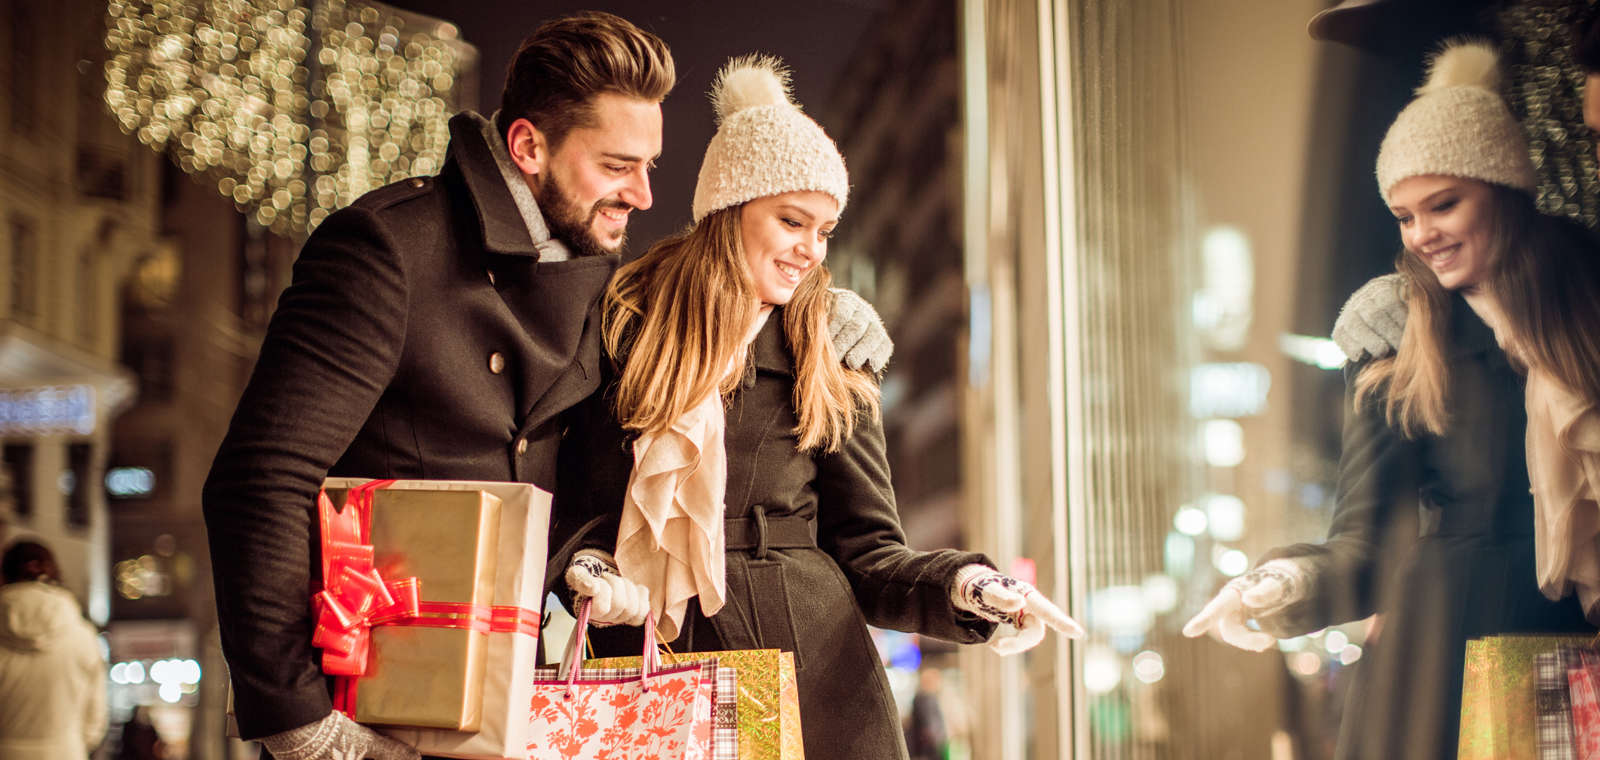 Talbott Hotel_Blog_The Best Holiday Shopping Hotspots in Chicago_hires